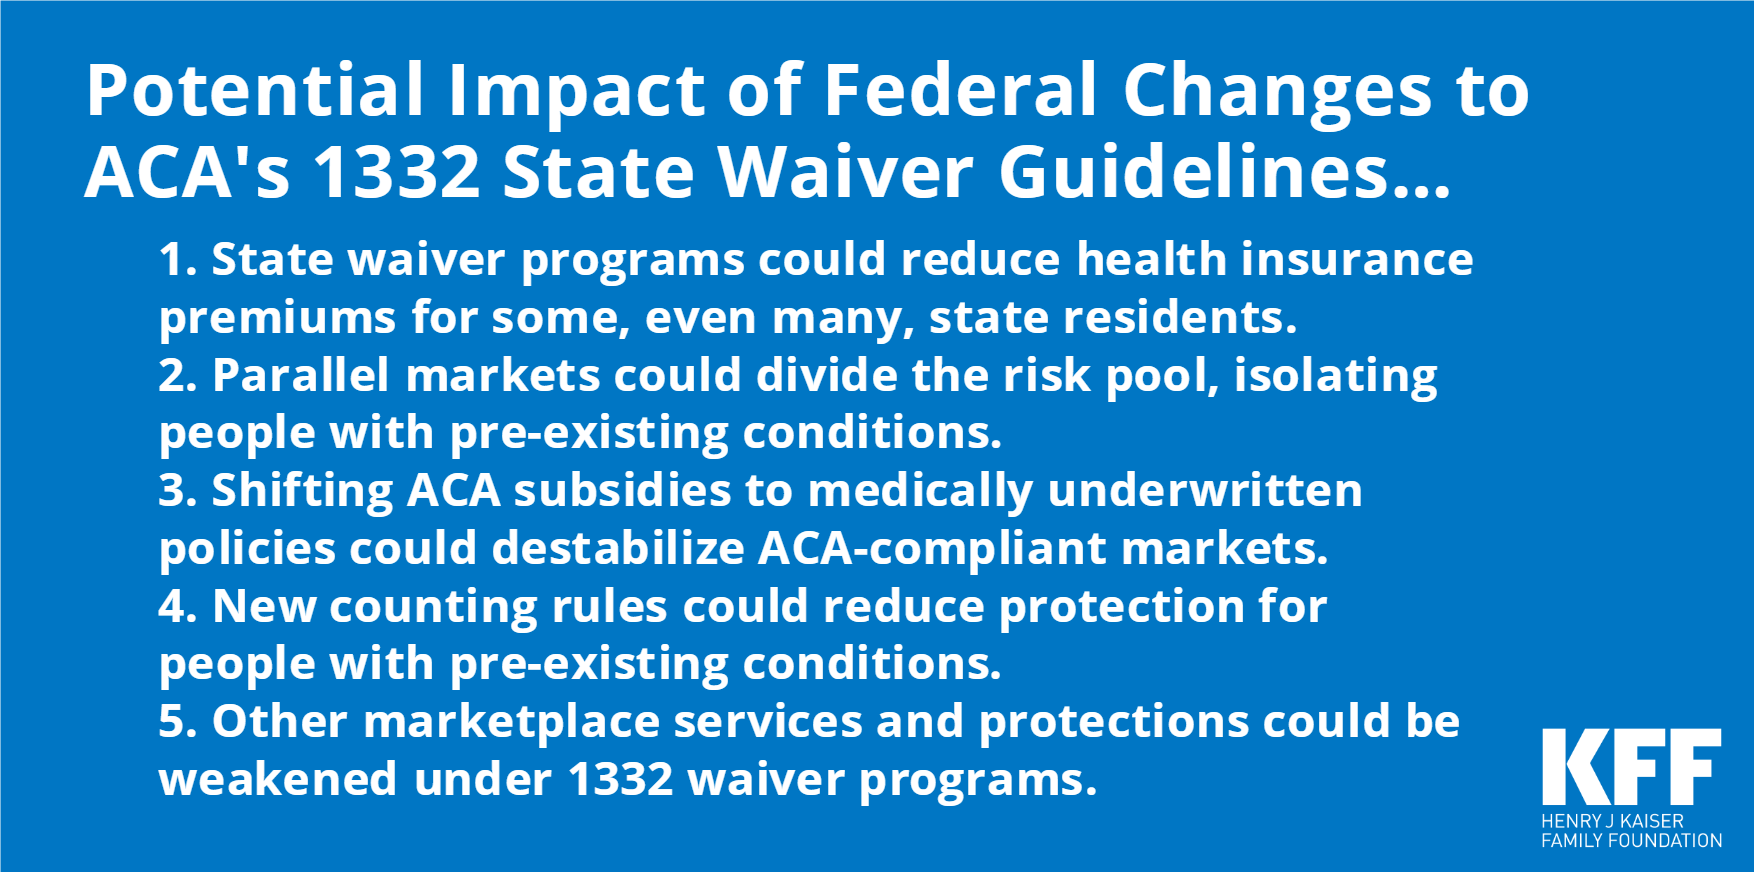 New Rules for Section 1332 Waivers: Changes and Implications